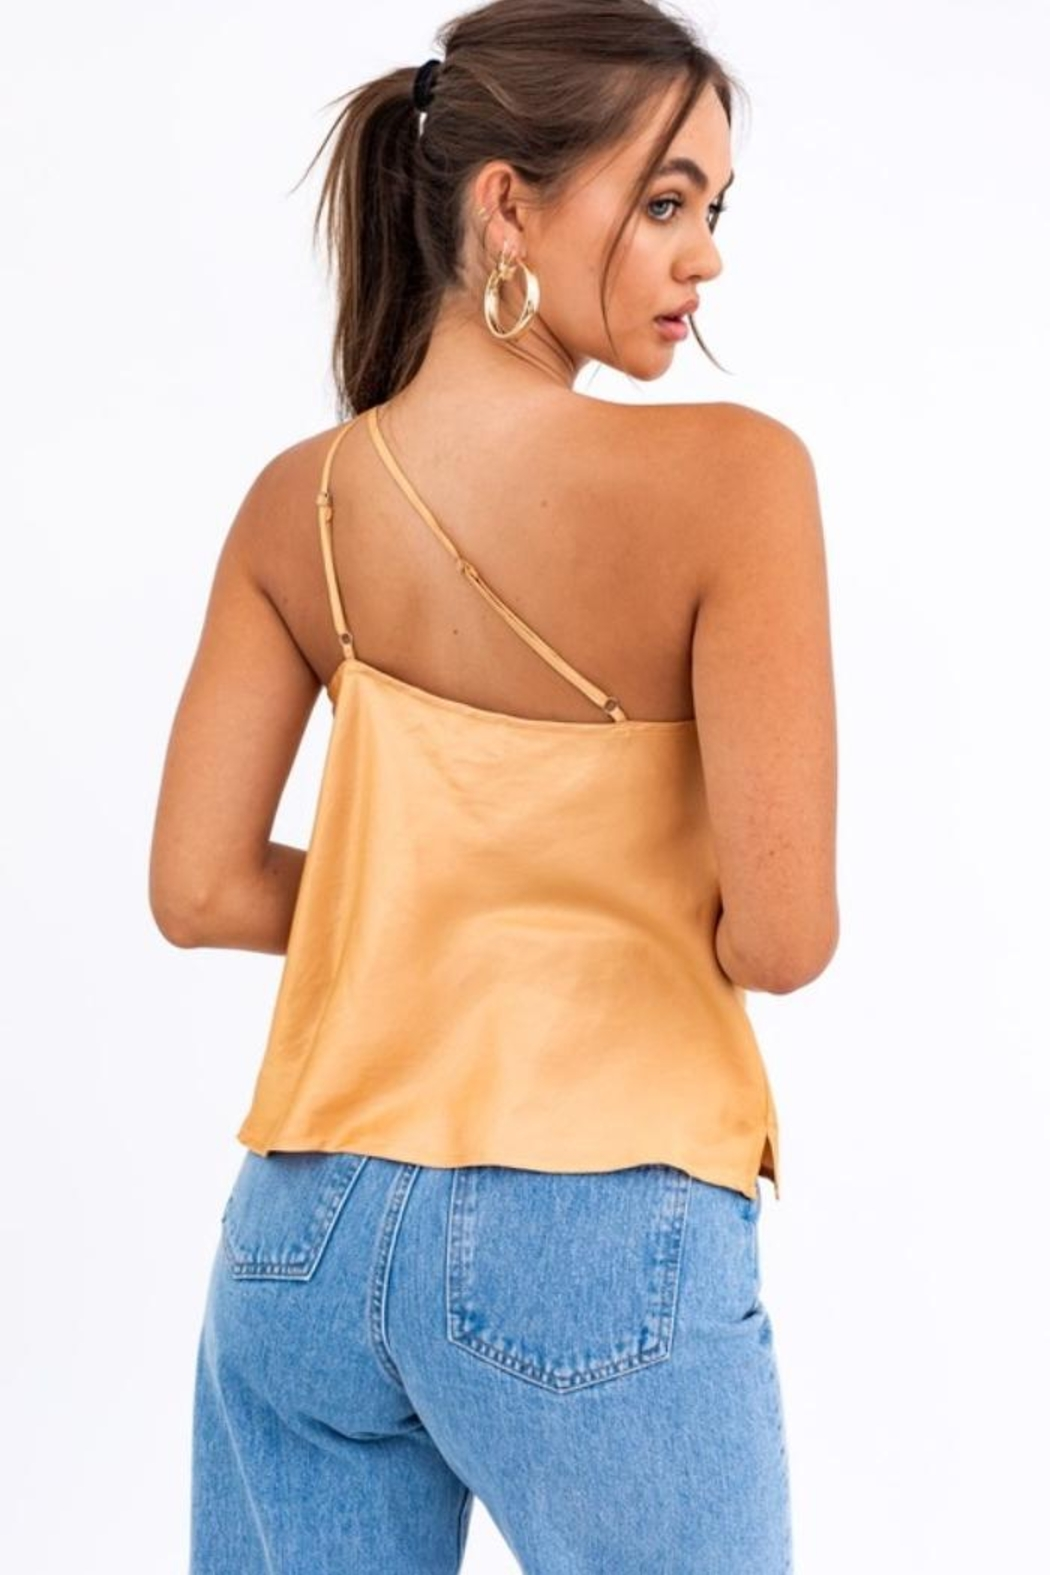 Le Lis Champagne Satin Top - Back Cropped Image